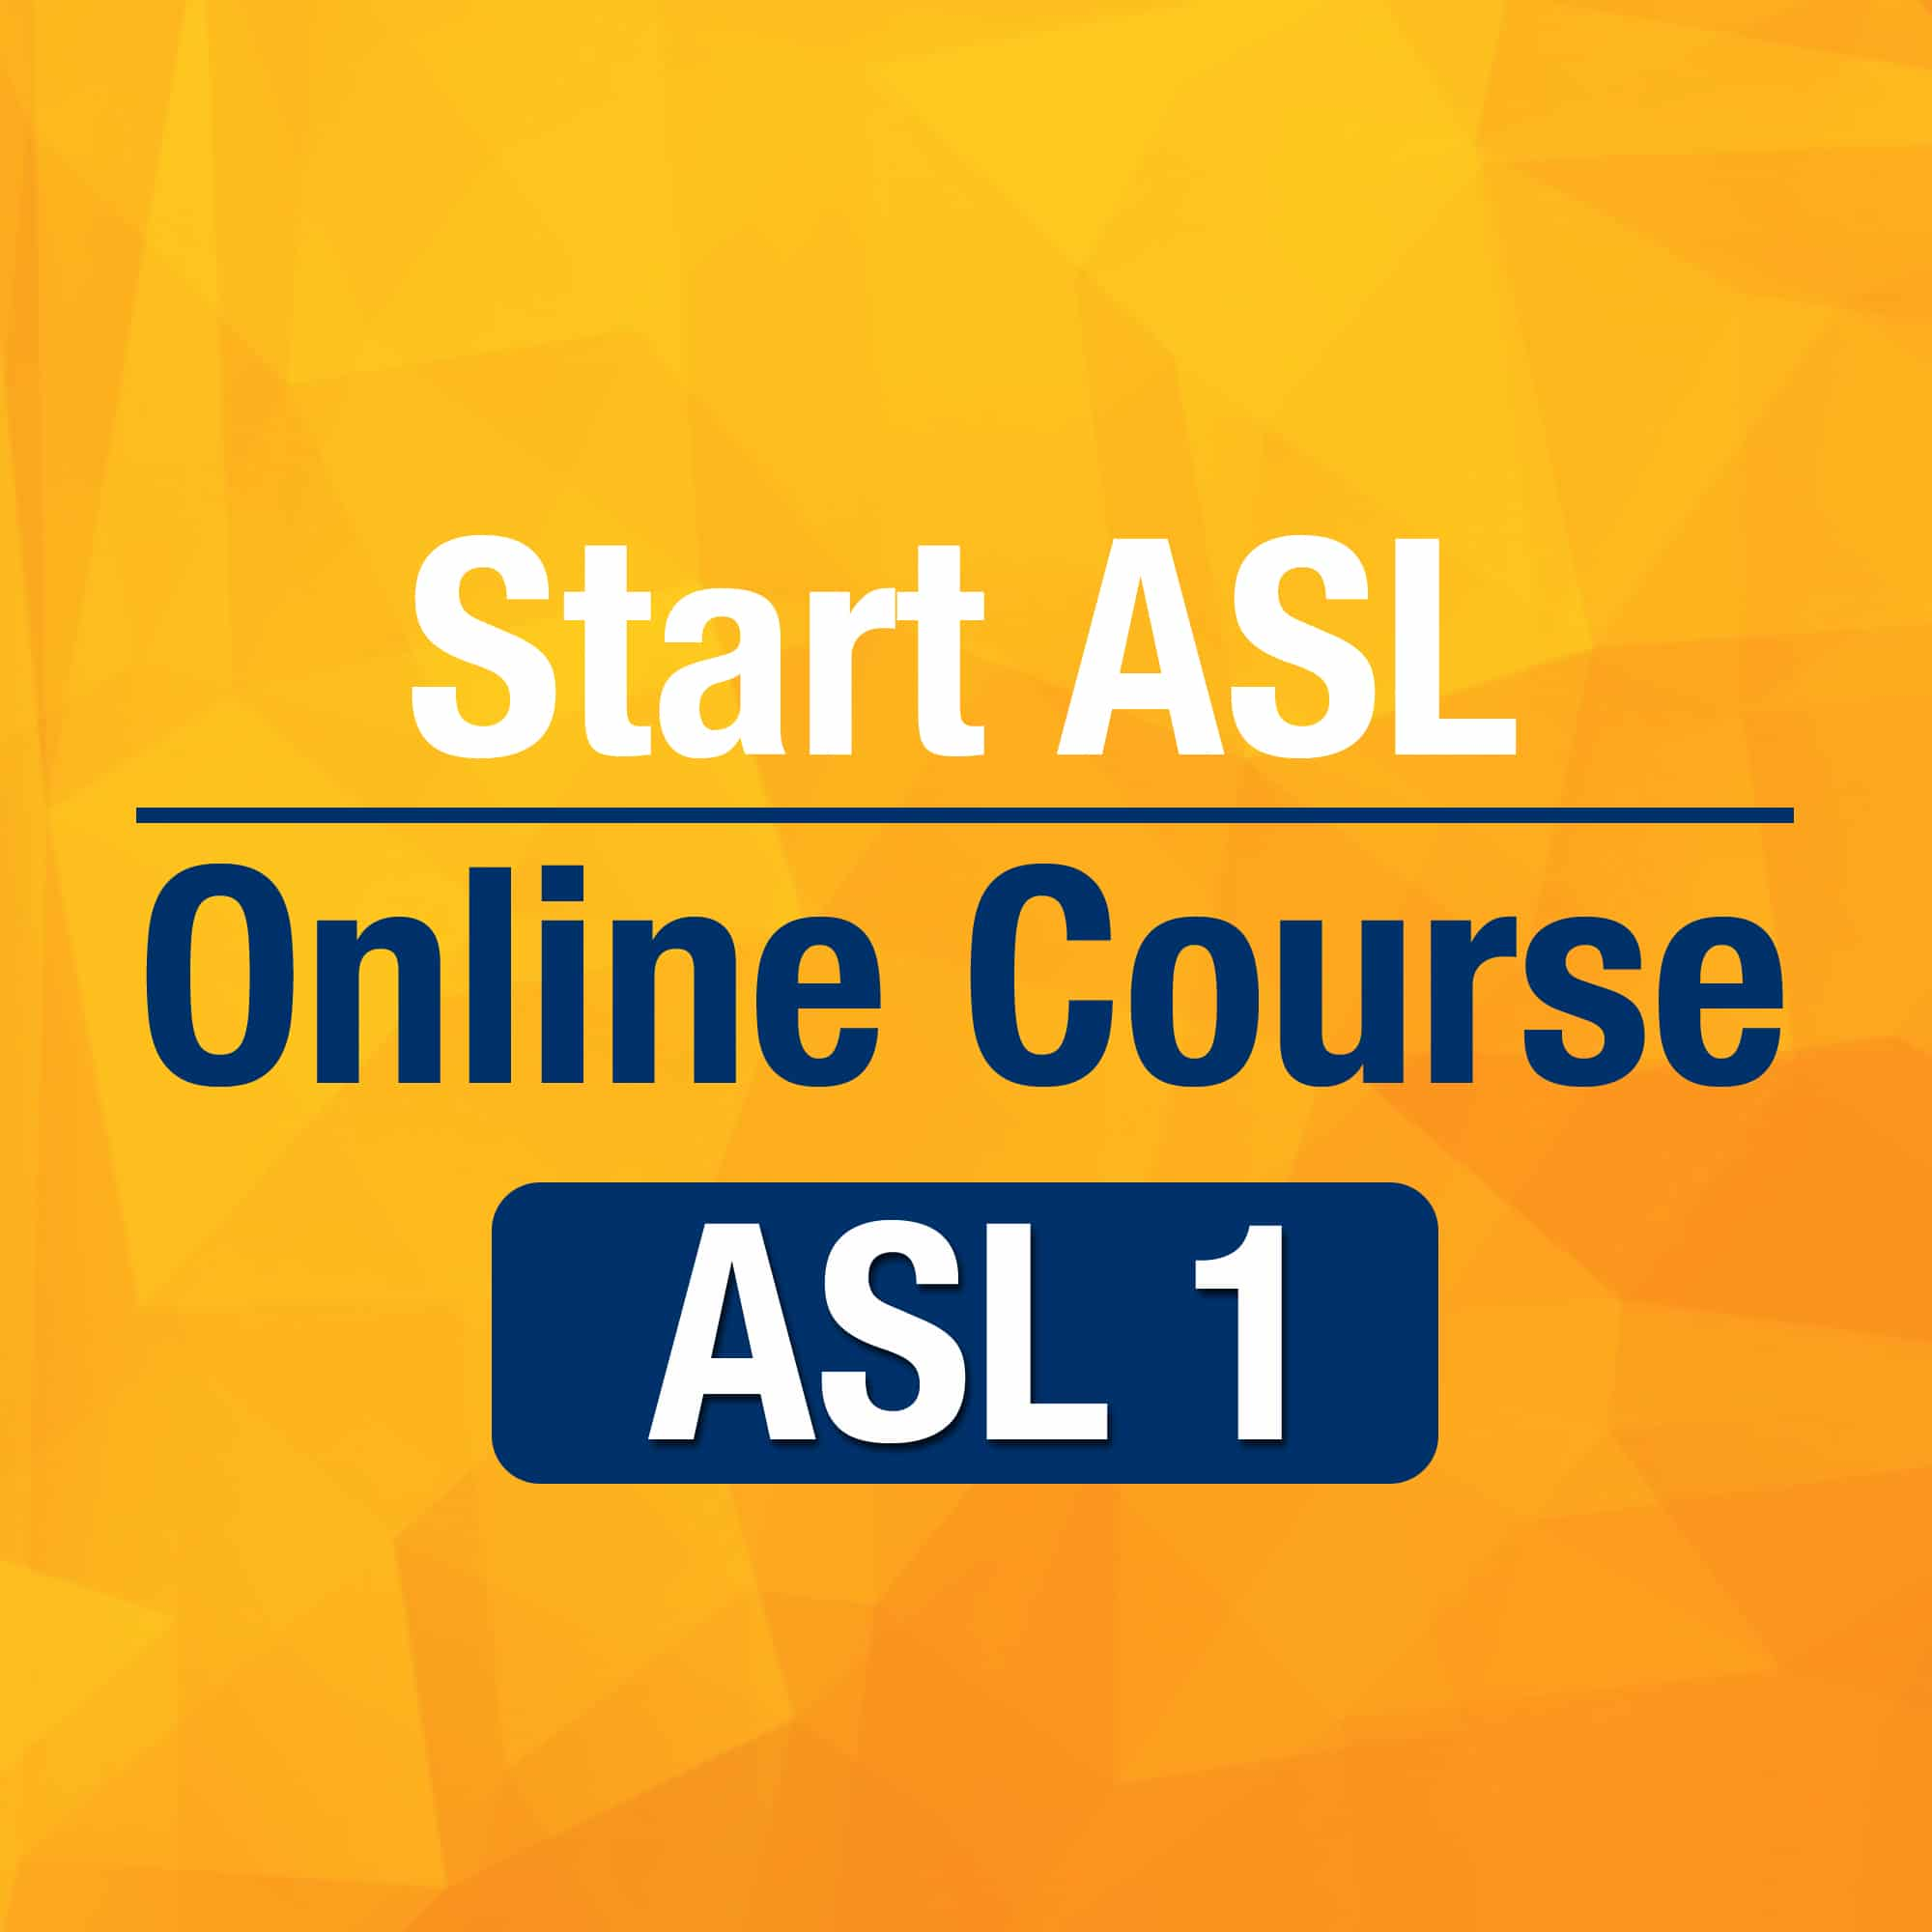 Start ASL 1 Online Course